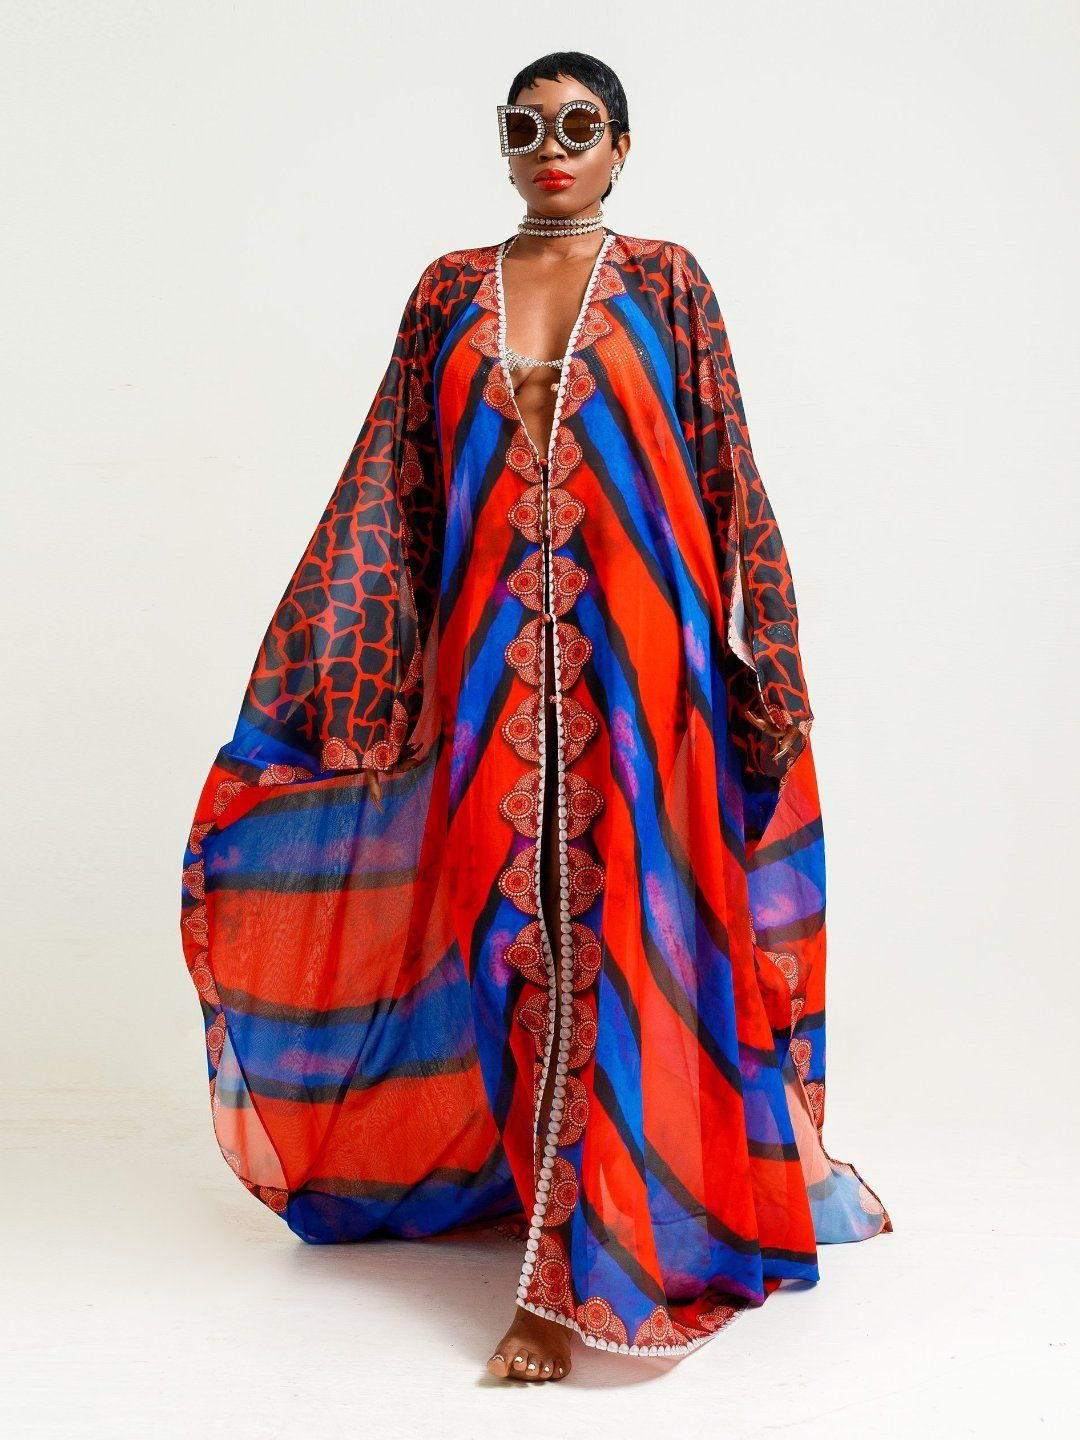 Luxury Resort Wear Kaftans  saisankoh  shopsaisankoh  dallasfashionblogger   dallasfashiondesigner  kaftan  kaftandress 5d8f8bb8578